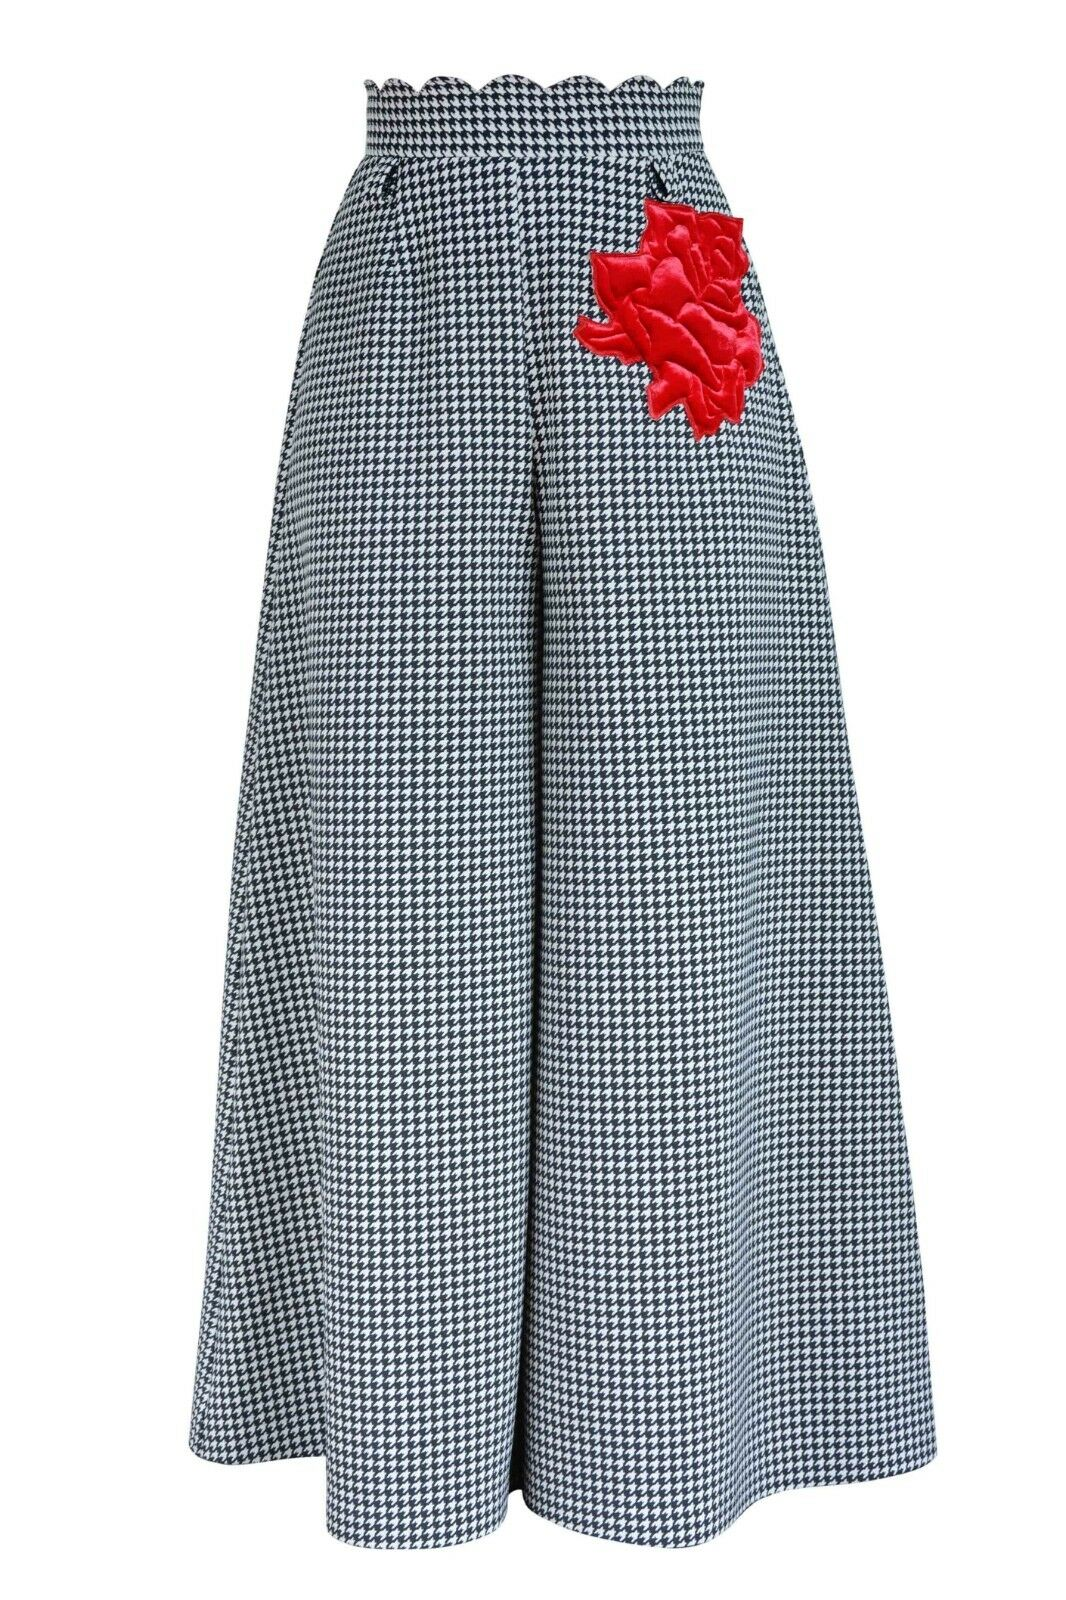 Wide palazzo houndstooth trousers retro 1940s inspired